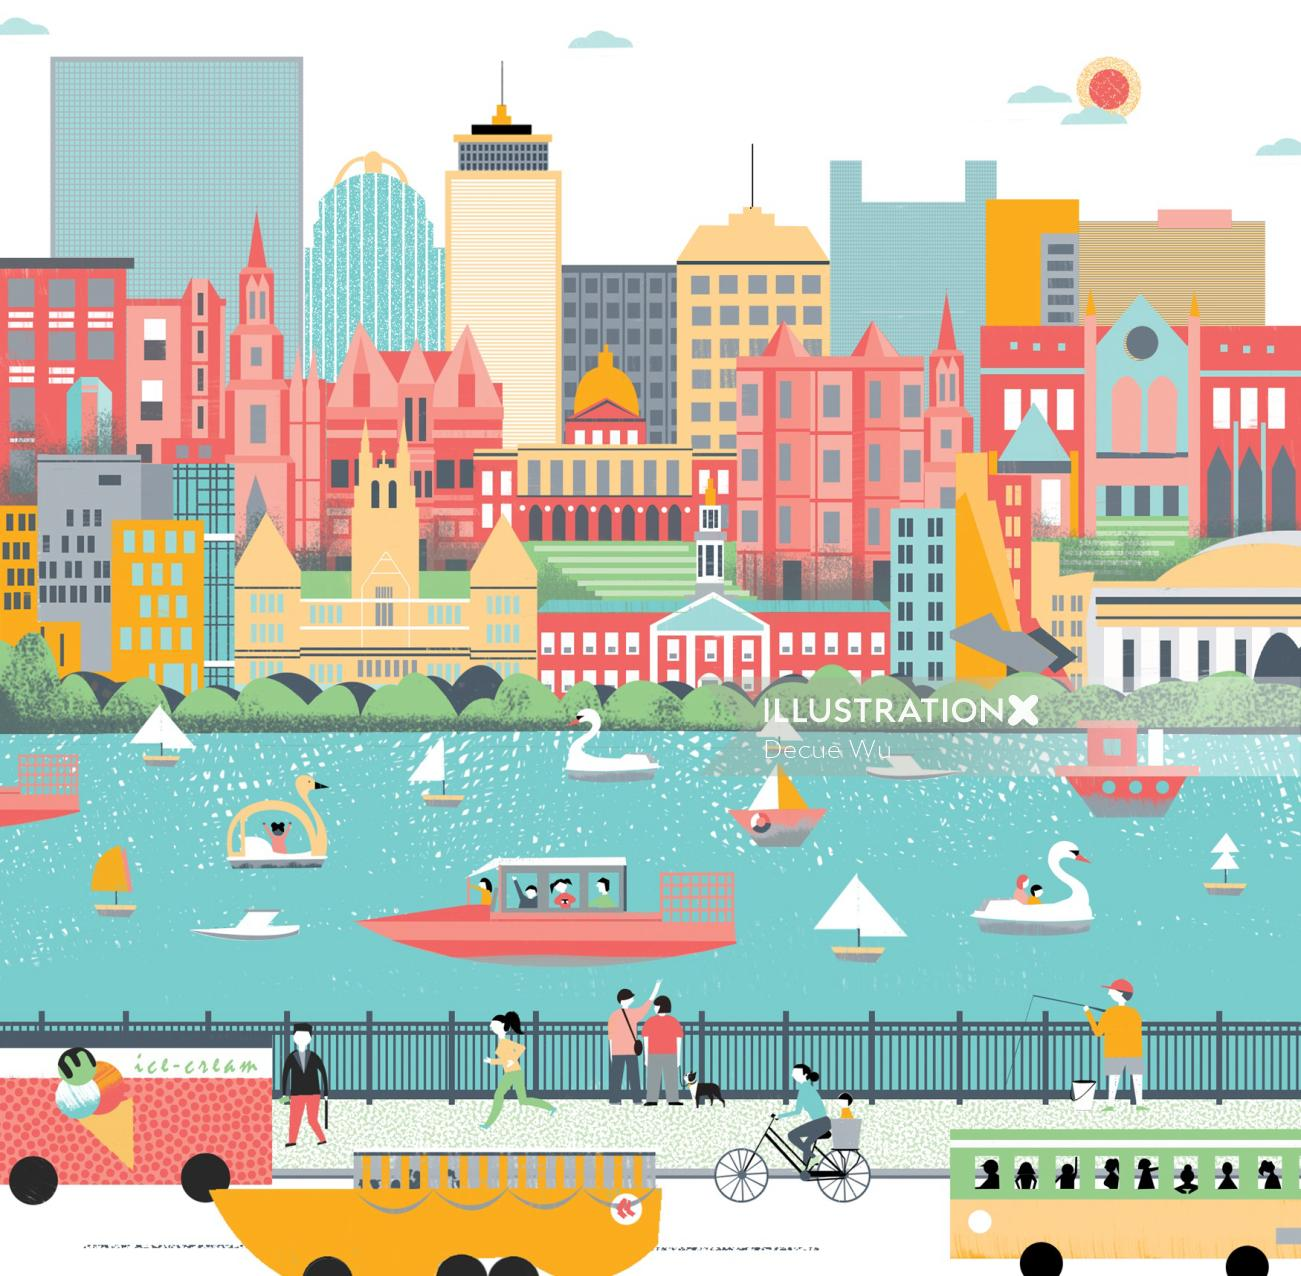 Boston's Economy Lifestyle Illustration For Airbnb